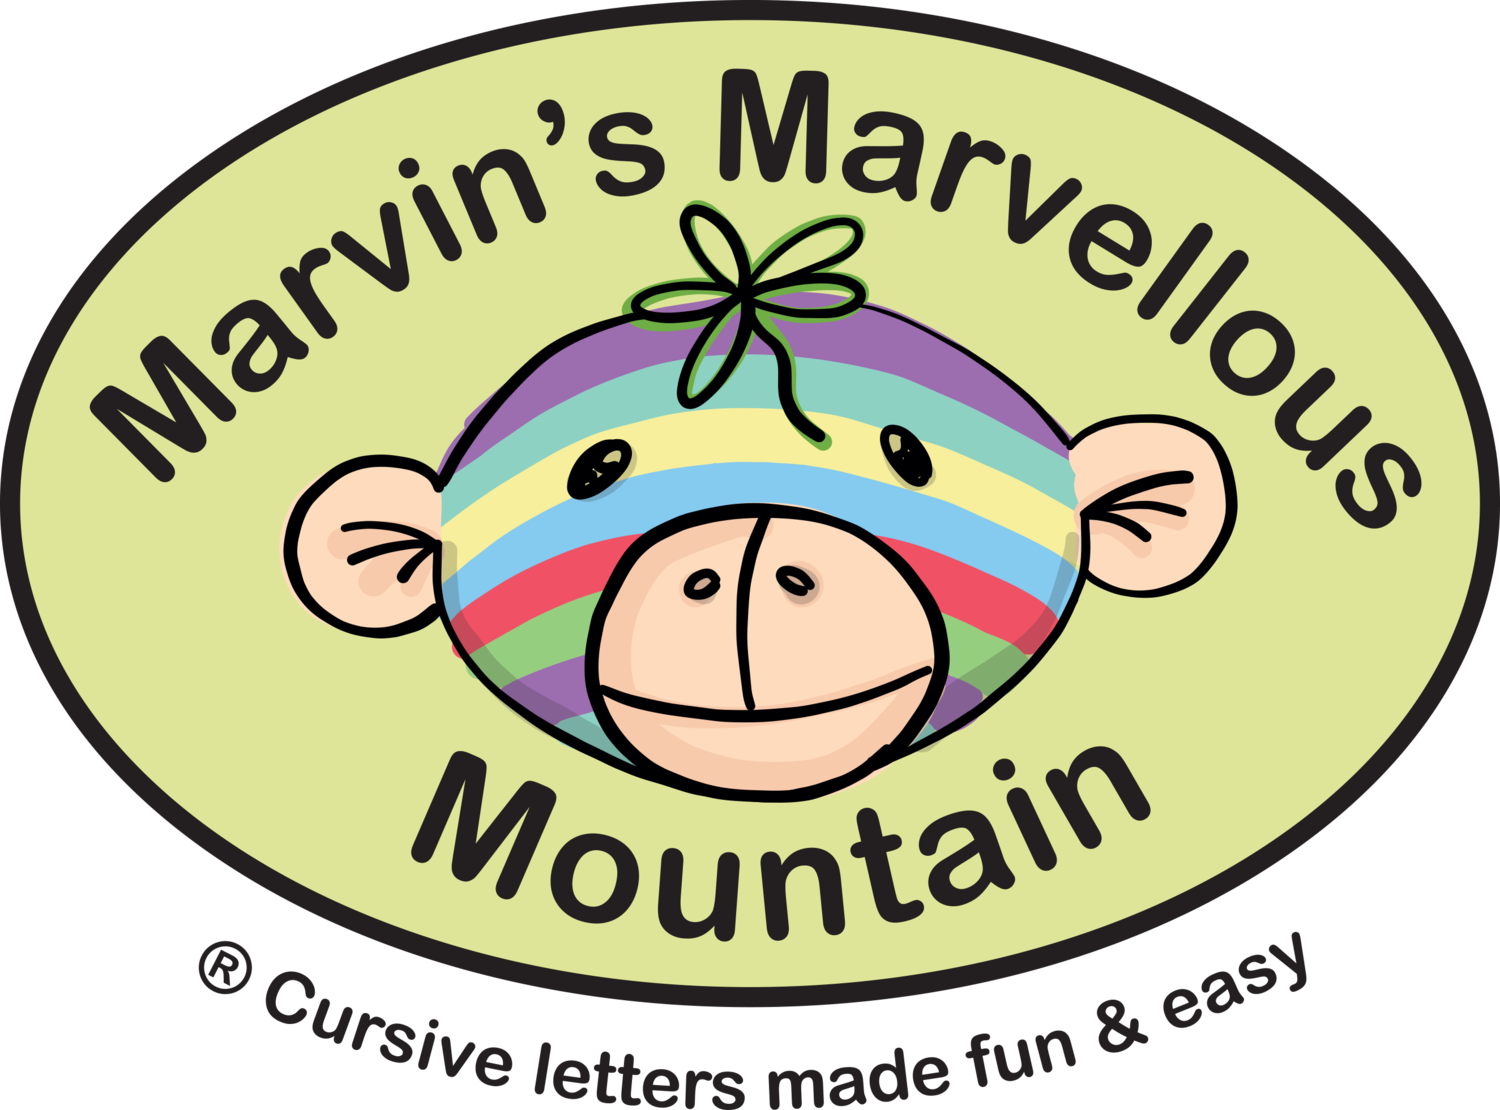 Marvin's Cursive Letters | Foundations stage cursive writing teaching programme